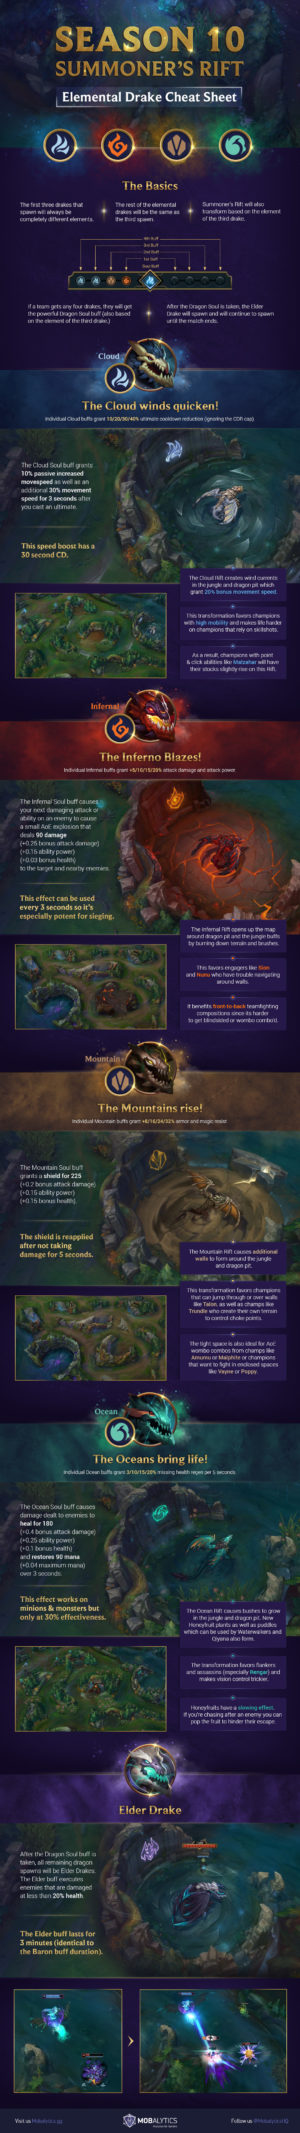 Season 10 Summoner's Rift: Elemental Drake Cheat Sheet